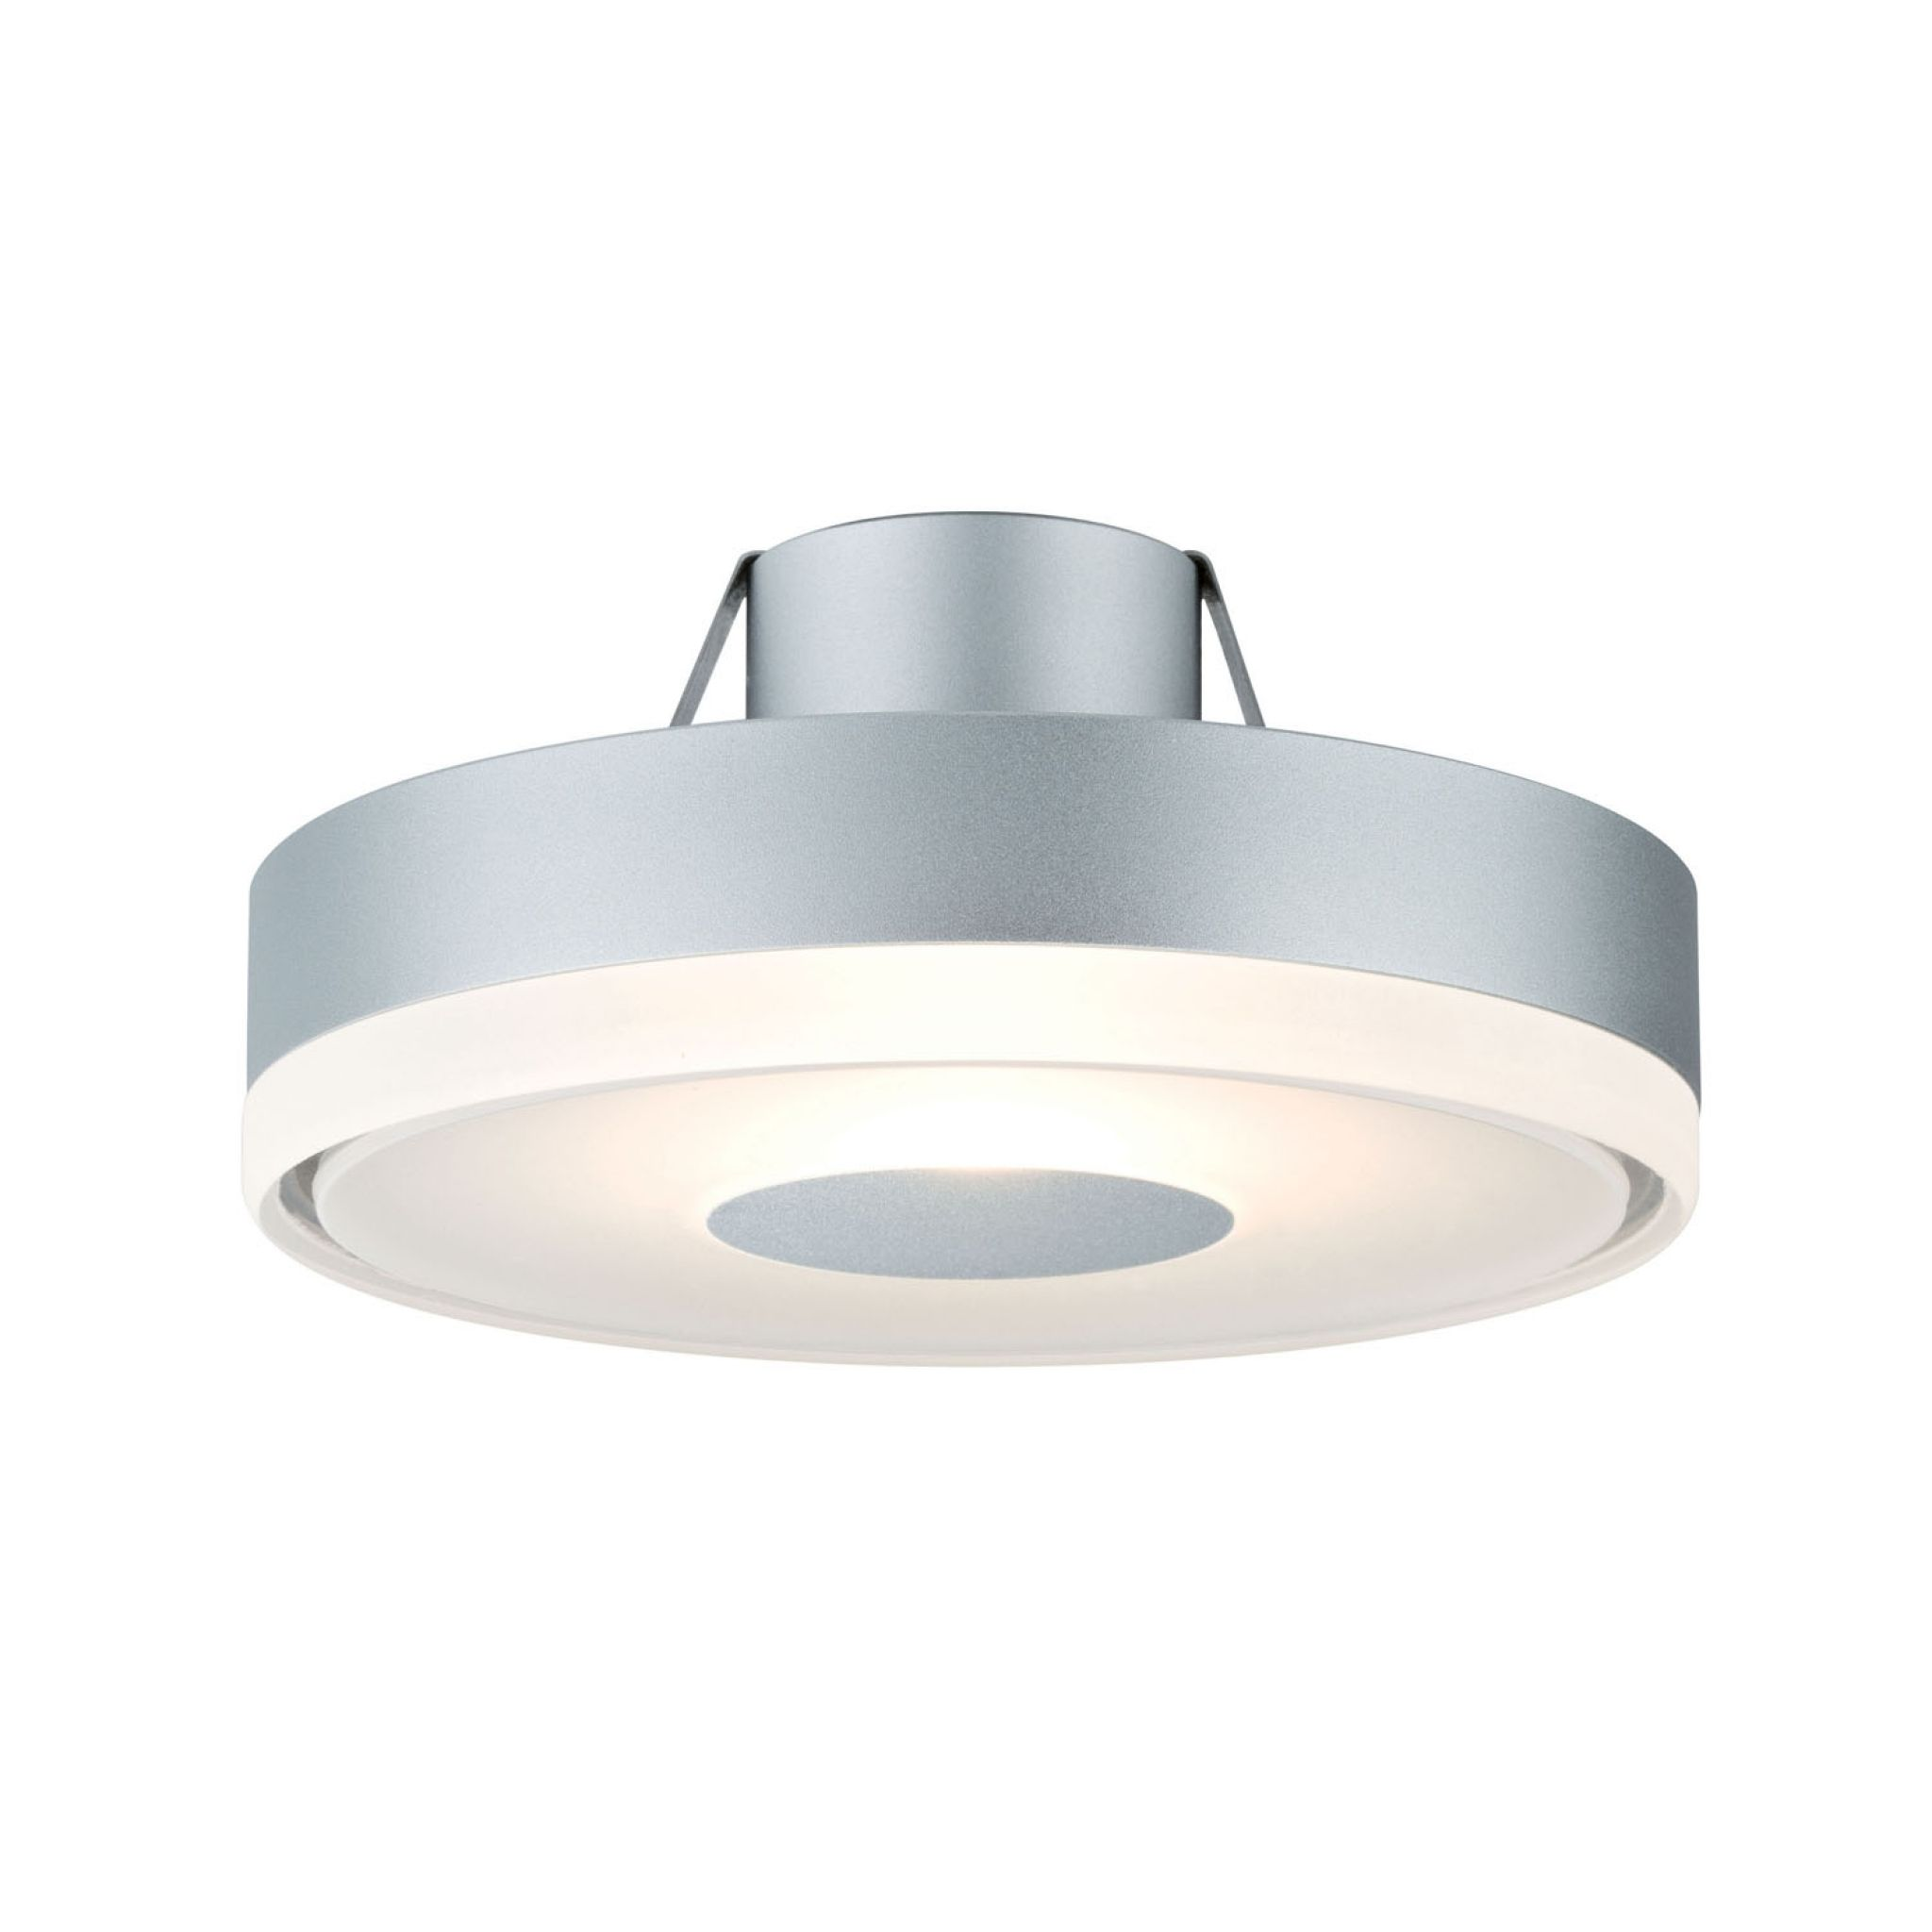 Outdoor recessed led lighting interior paint colors 2017 check outdoor recessed led lighting interior paint colors 2017 check more at http aloadofball Choice Image